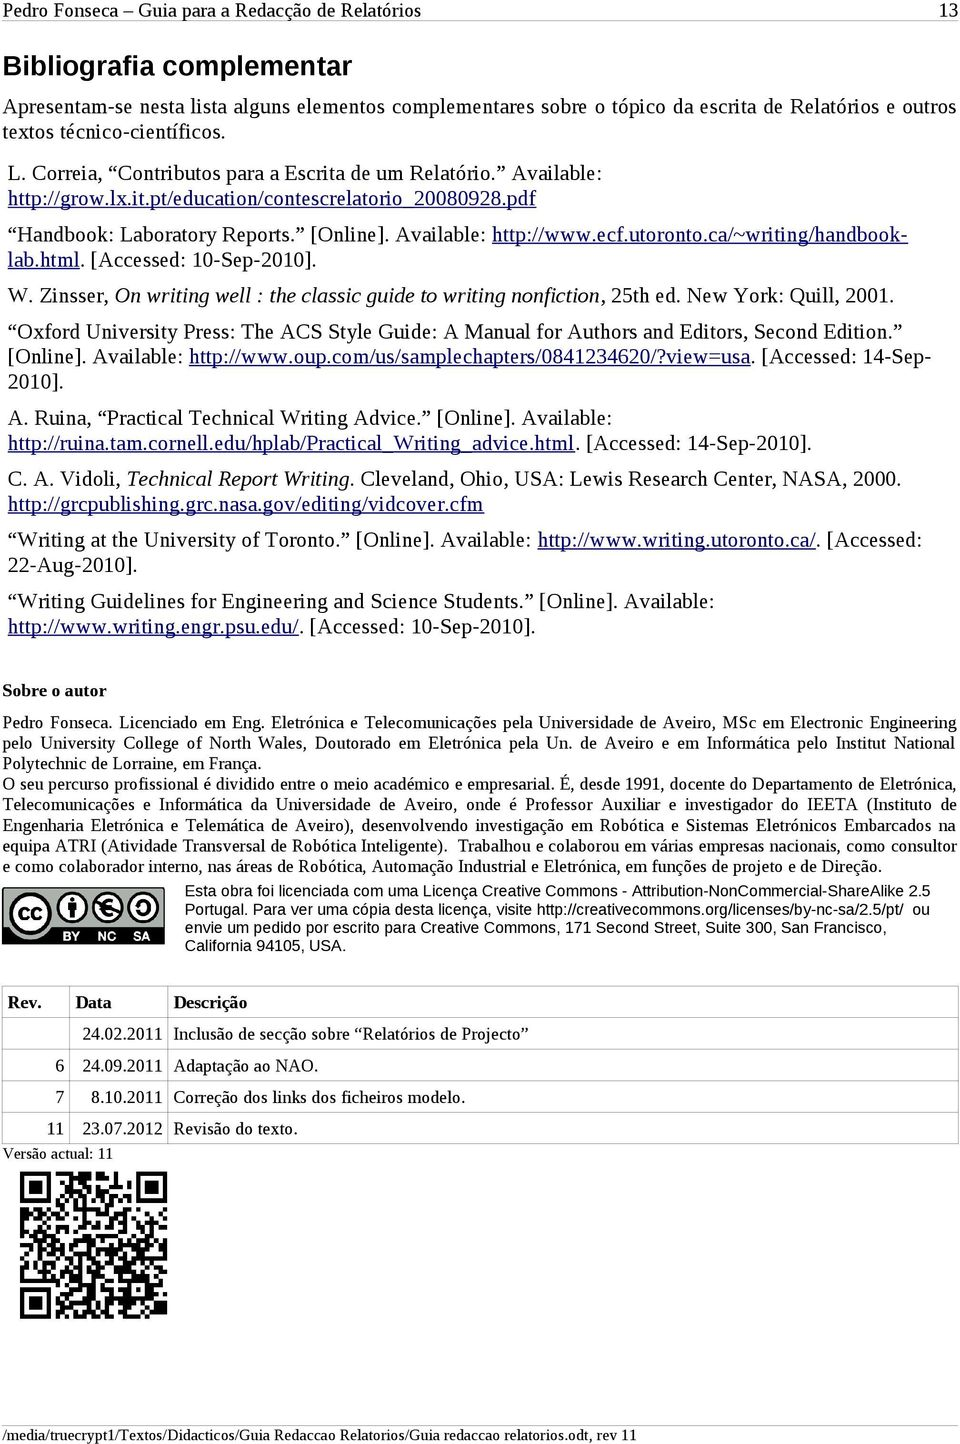 Available: http://www.ecf.utoronto.ca/~writing/handbooklab.html. [Accessed: 10-Sep-2010]. W. Zinsser, On writing well : the classic guide to writing nonfiction, 25th ed. New York: Quill, 2001.